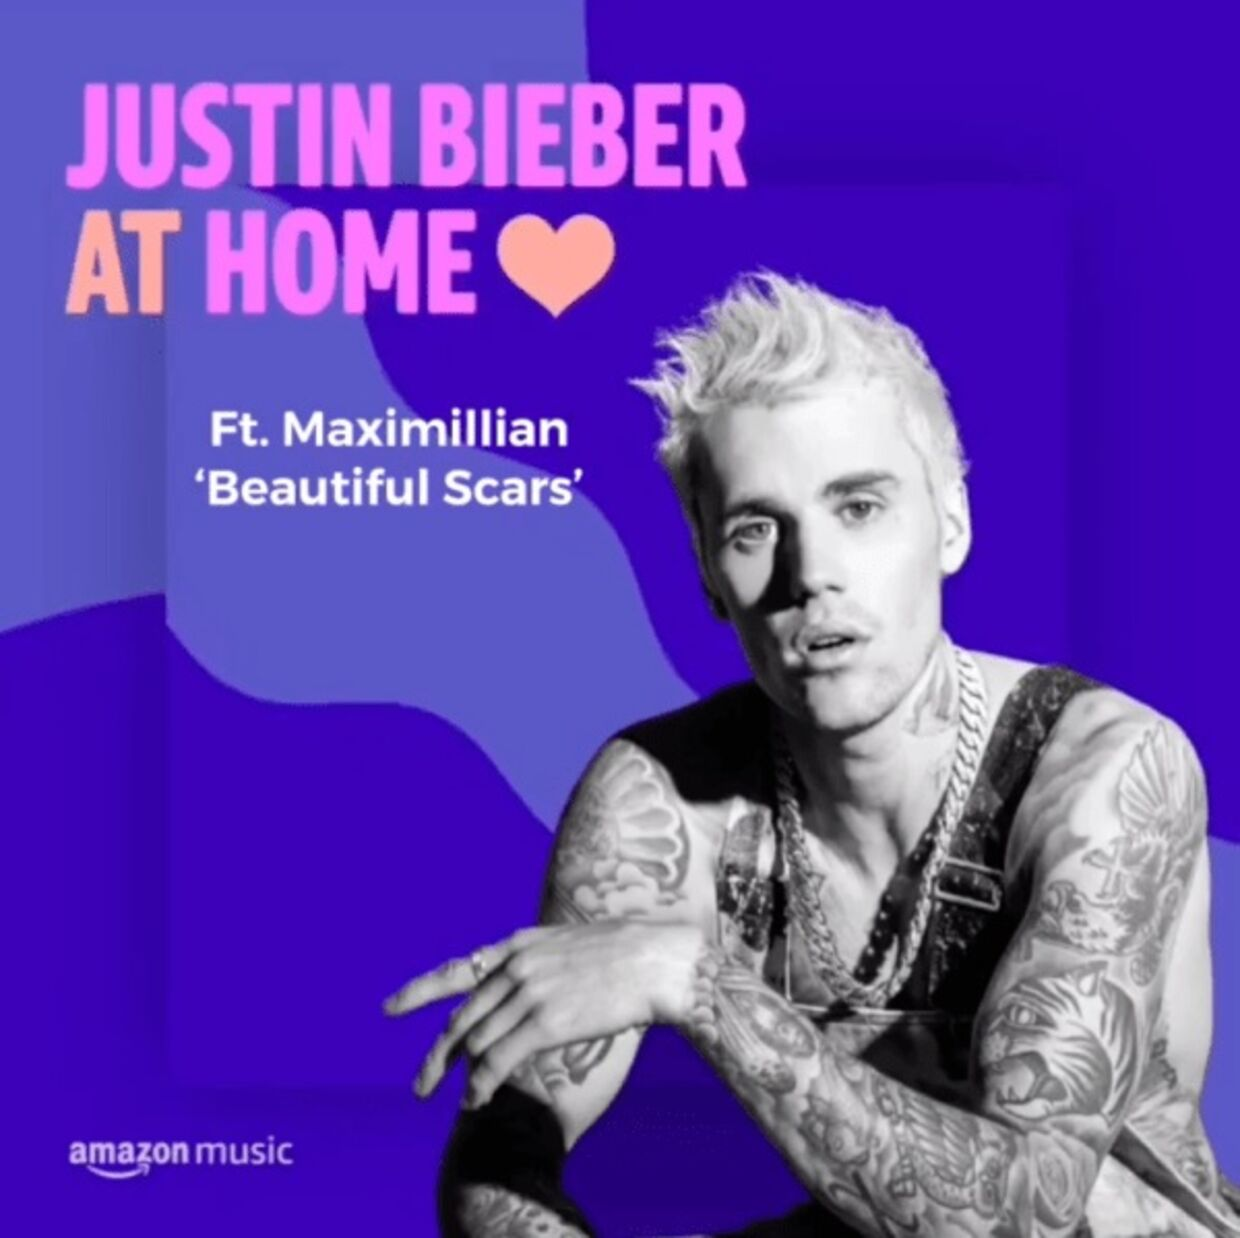 Justin Bieber placerede i foråret Maximillians nummer 'Beautiful Scars' på sin Amazon Music 'Stay at home'-playliste.